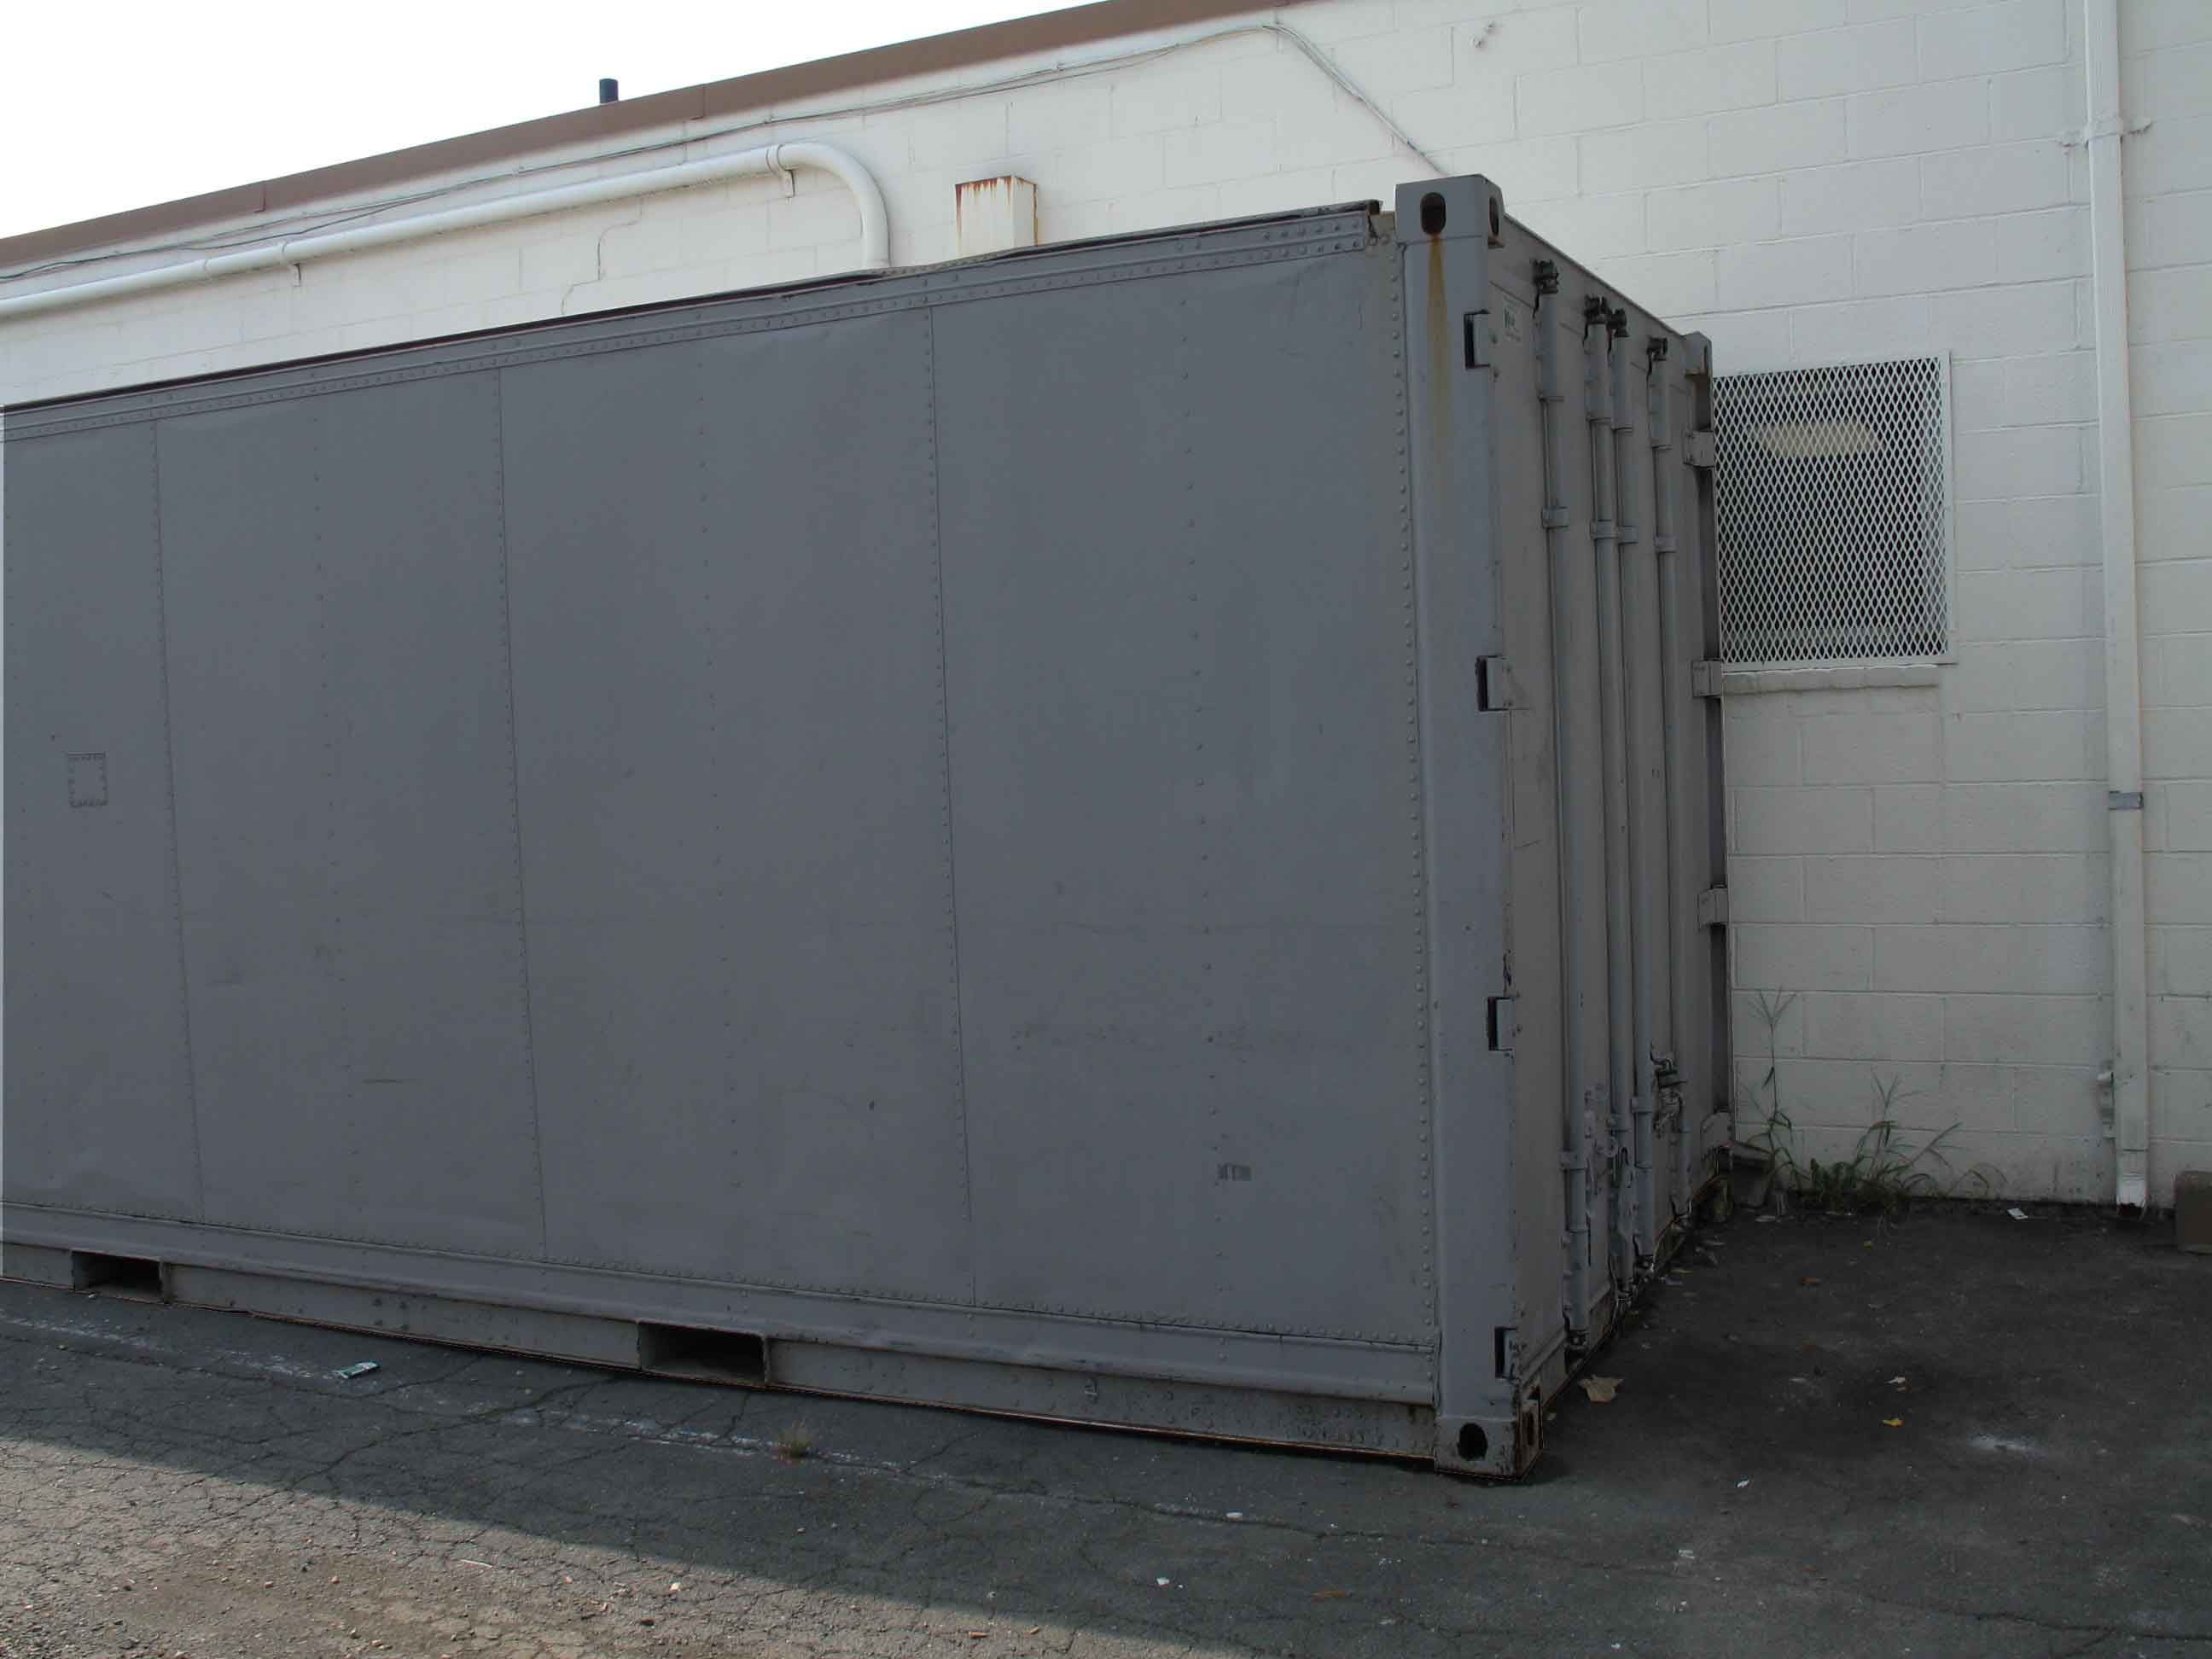 container_side_01